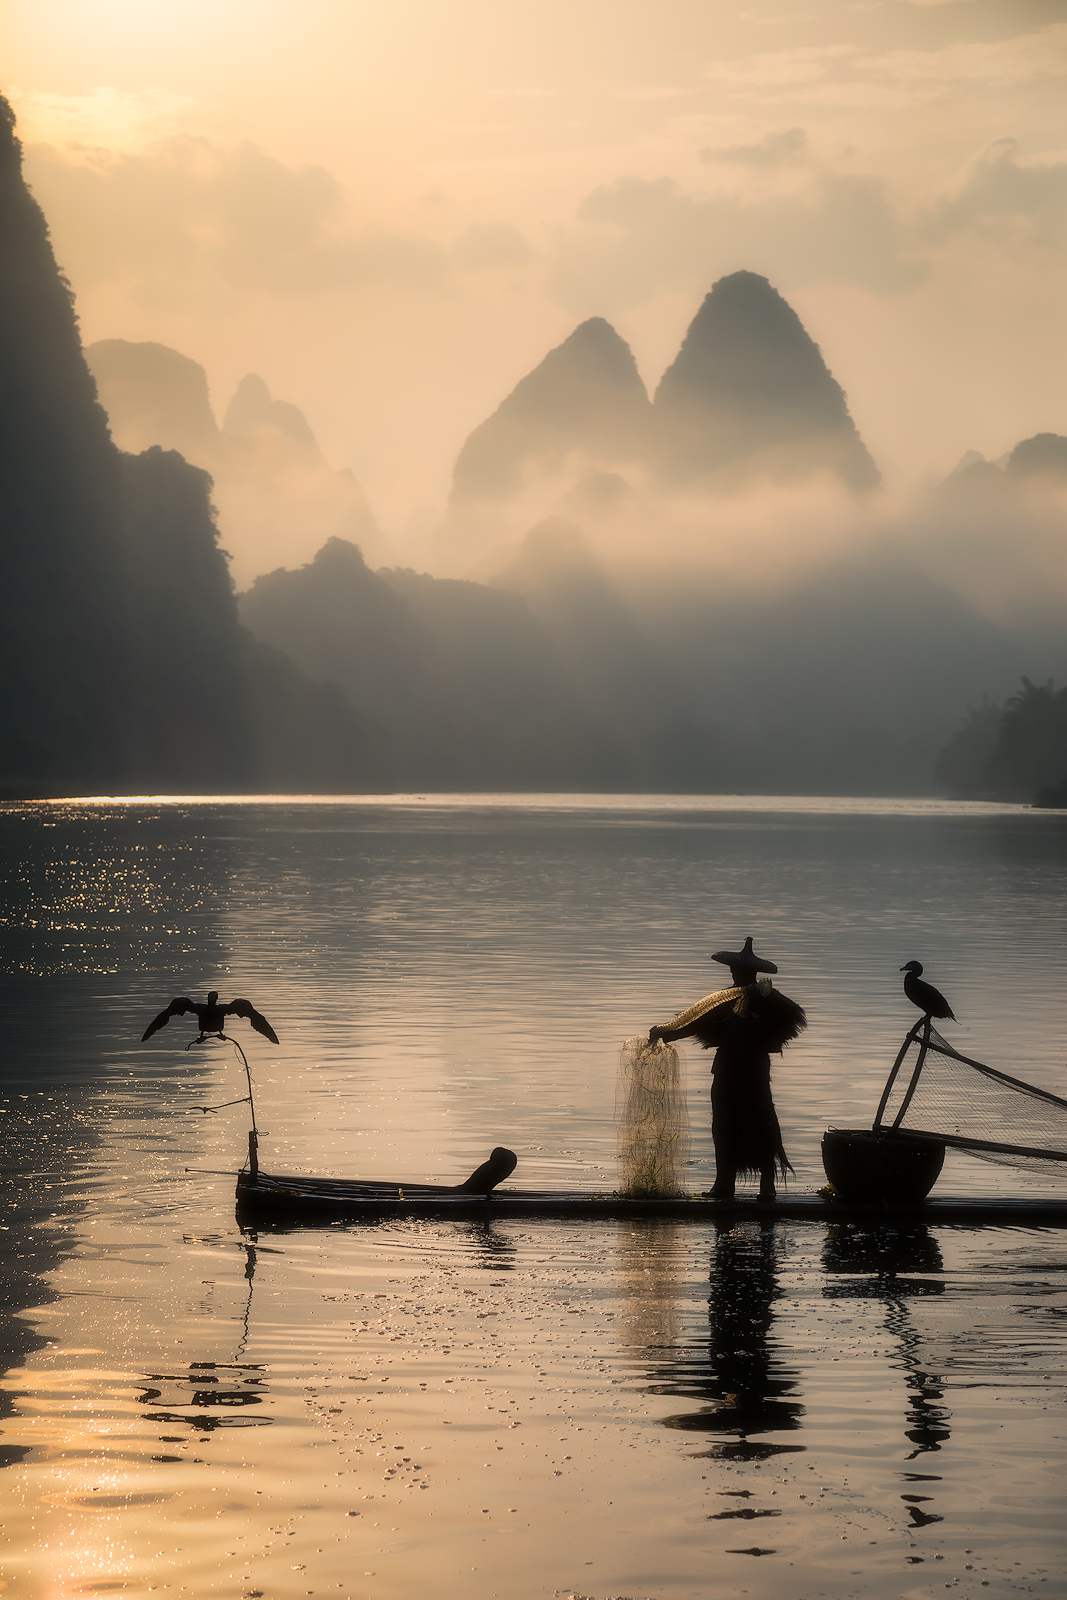 2017, asia, asian, bird, china, chinese, clouds, cormorant, fisherman, fishing, foggy, guilin, karst mountains, li river, model location, morning, mountain, river, silhouette, sunrise, water body, yan, photo